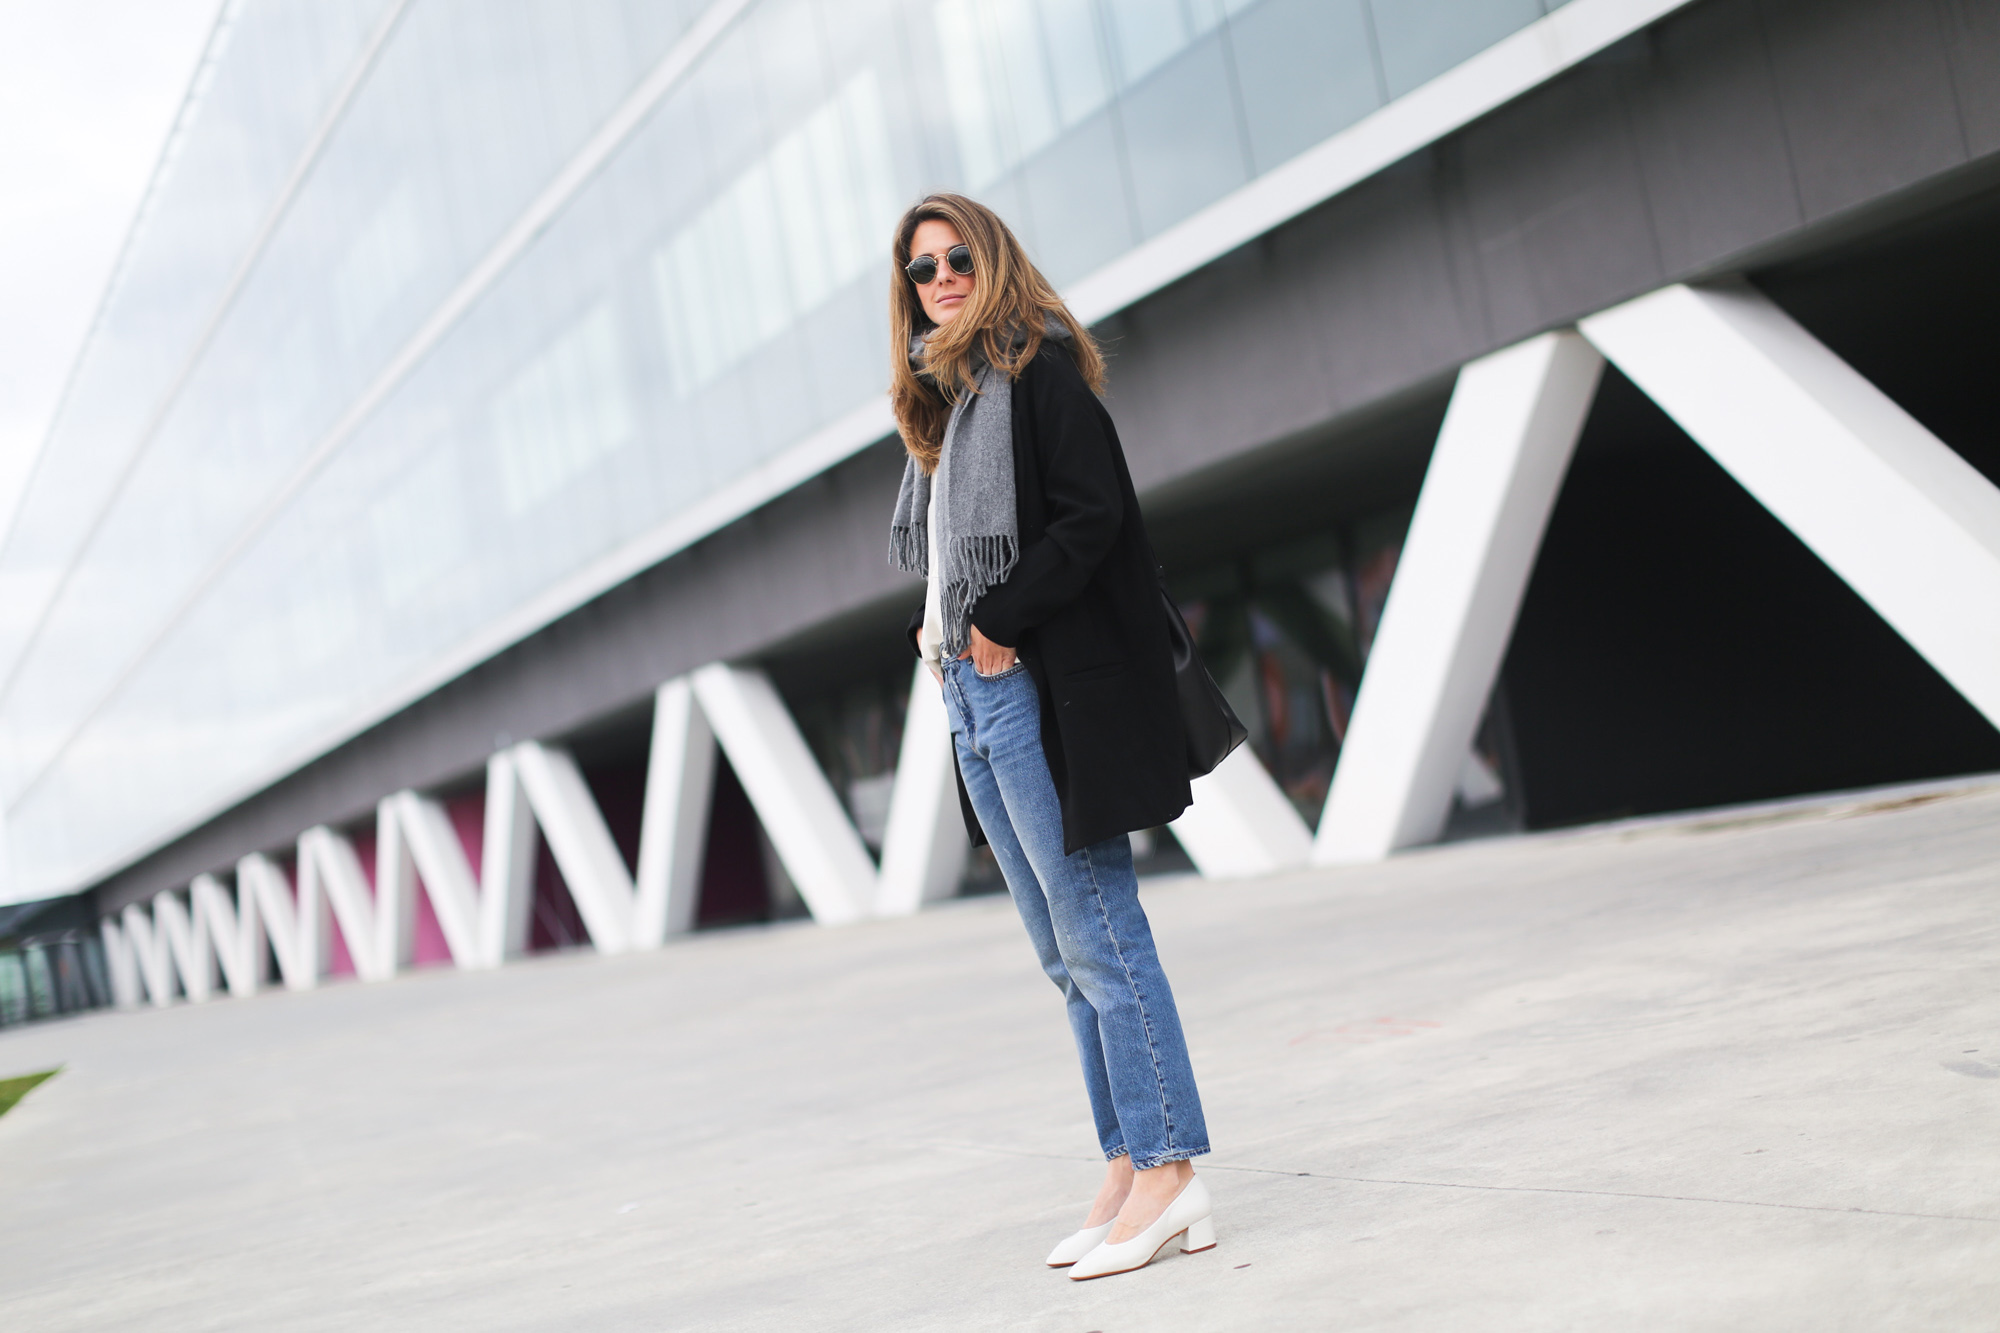 clochet_streetstyle_acnestudios_pop_jeans_mansurgavriel_bucket_bag_granny_shoes-2